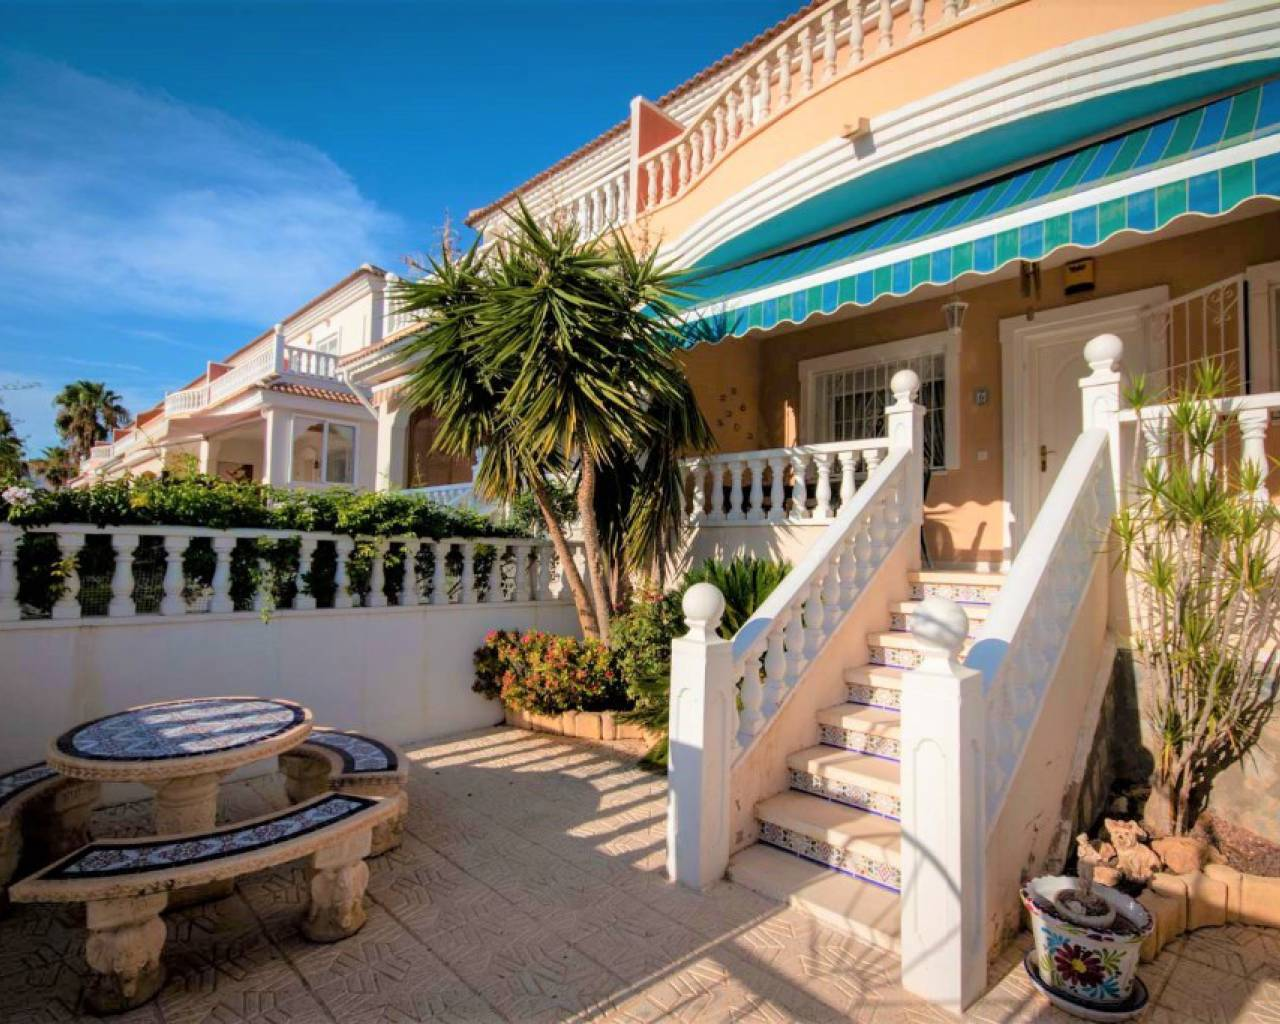 Townhouse - Sale - Alicante - Benijófar